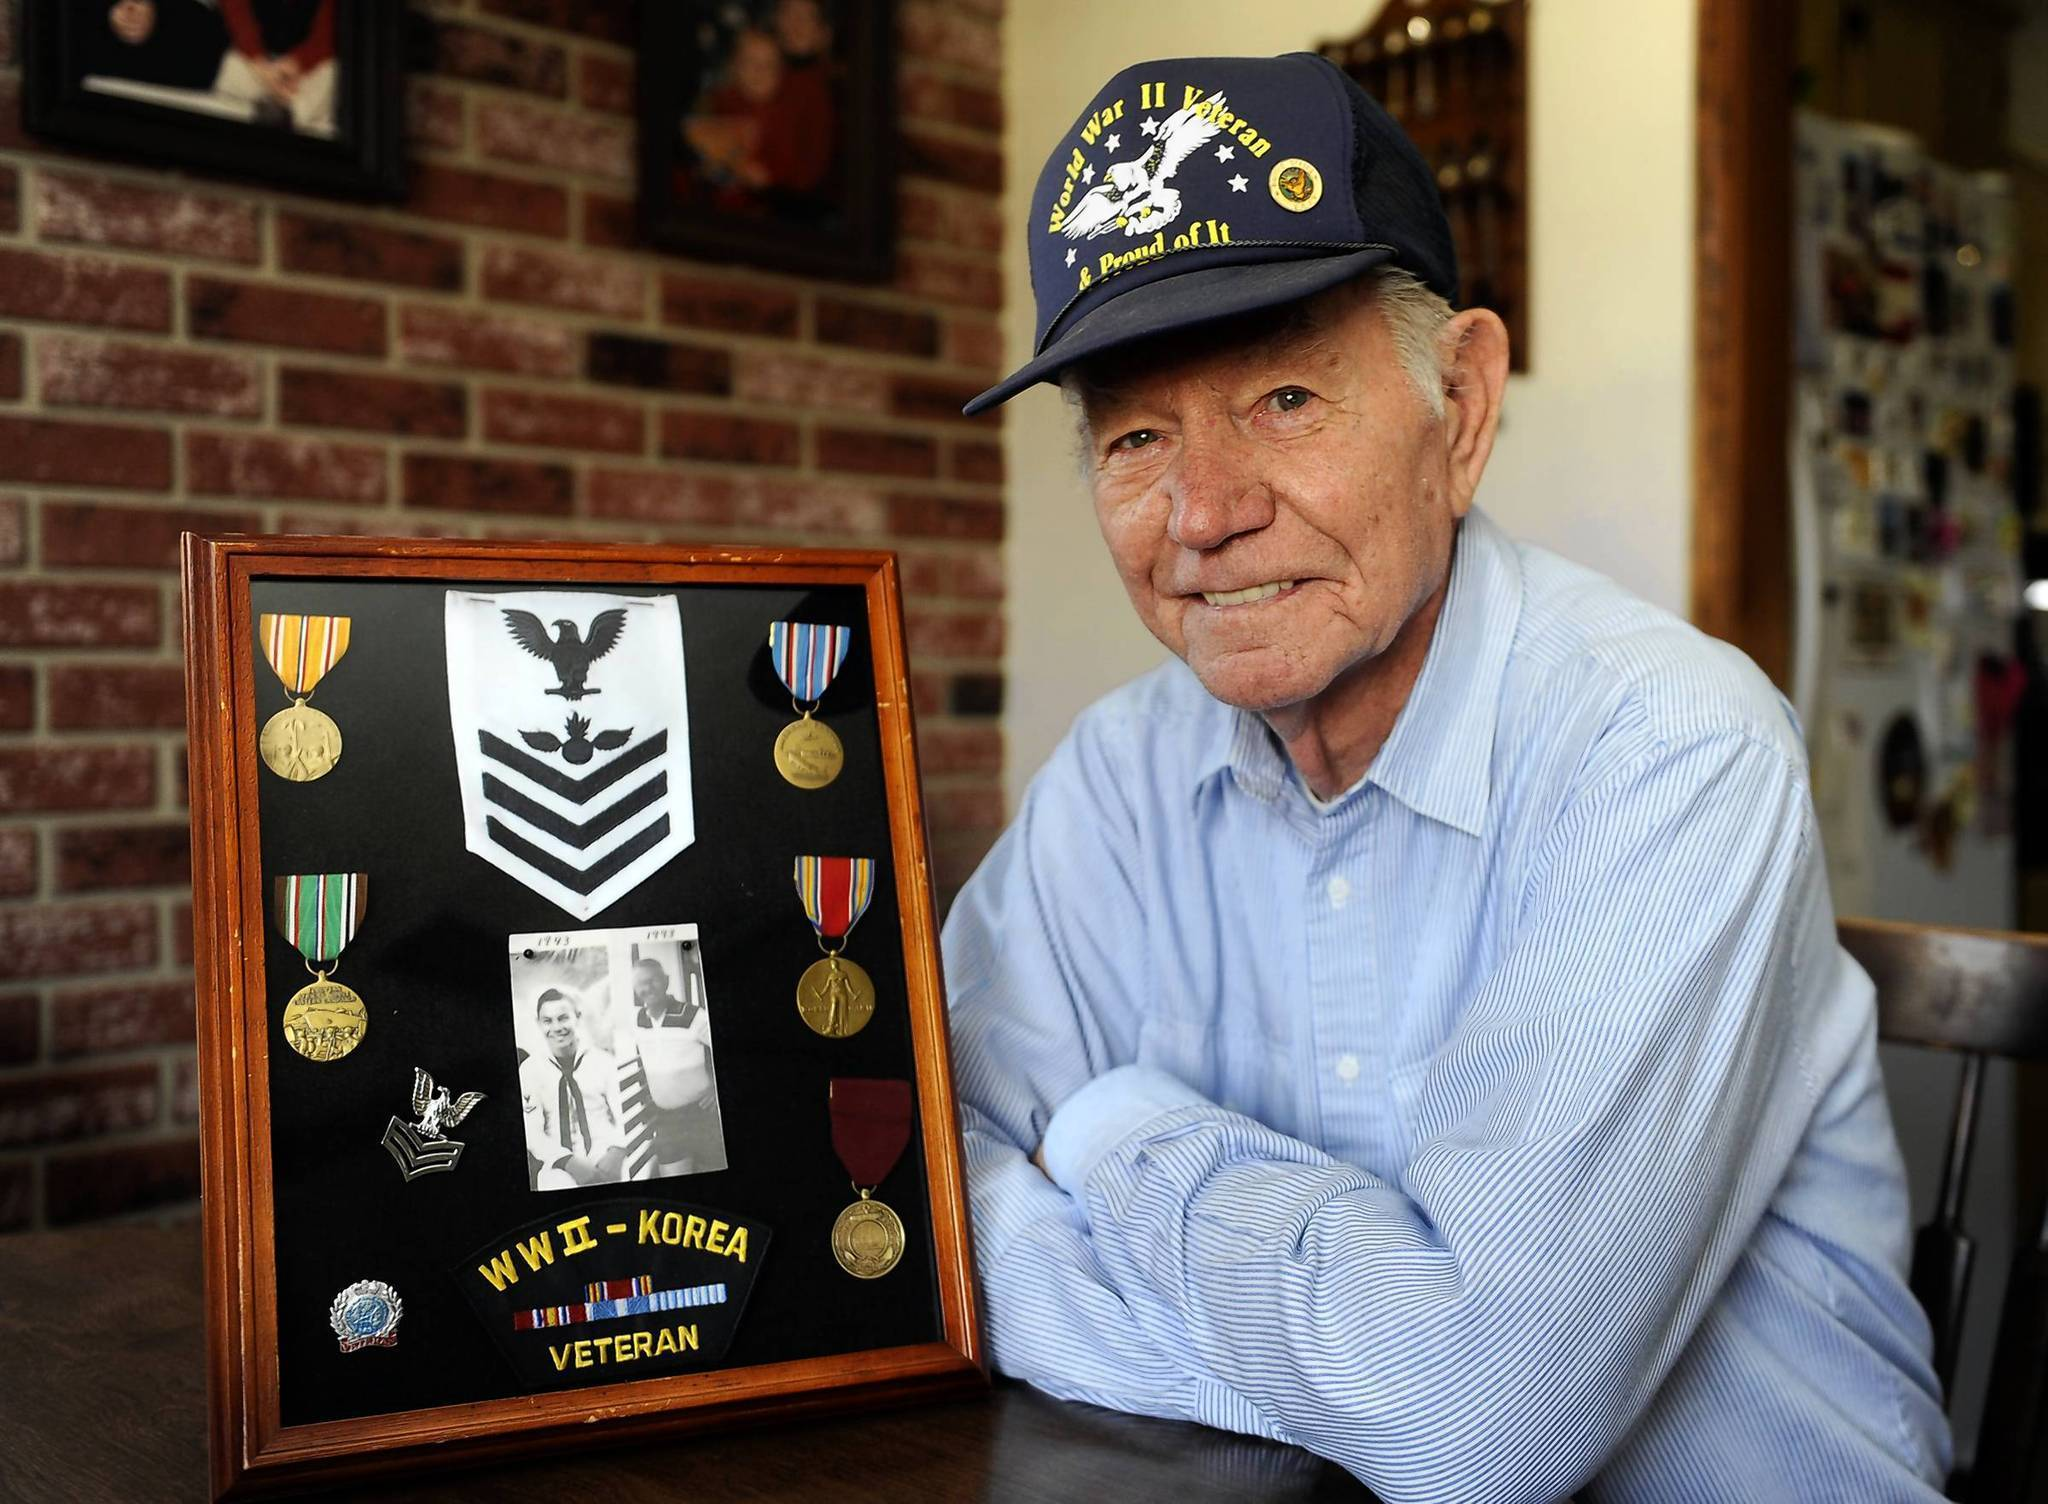 For some veterans underage enlistment is point of pride